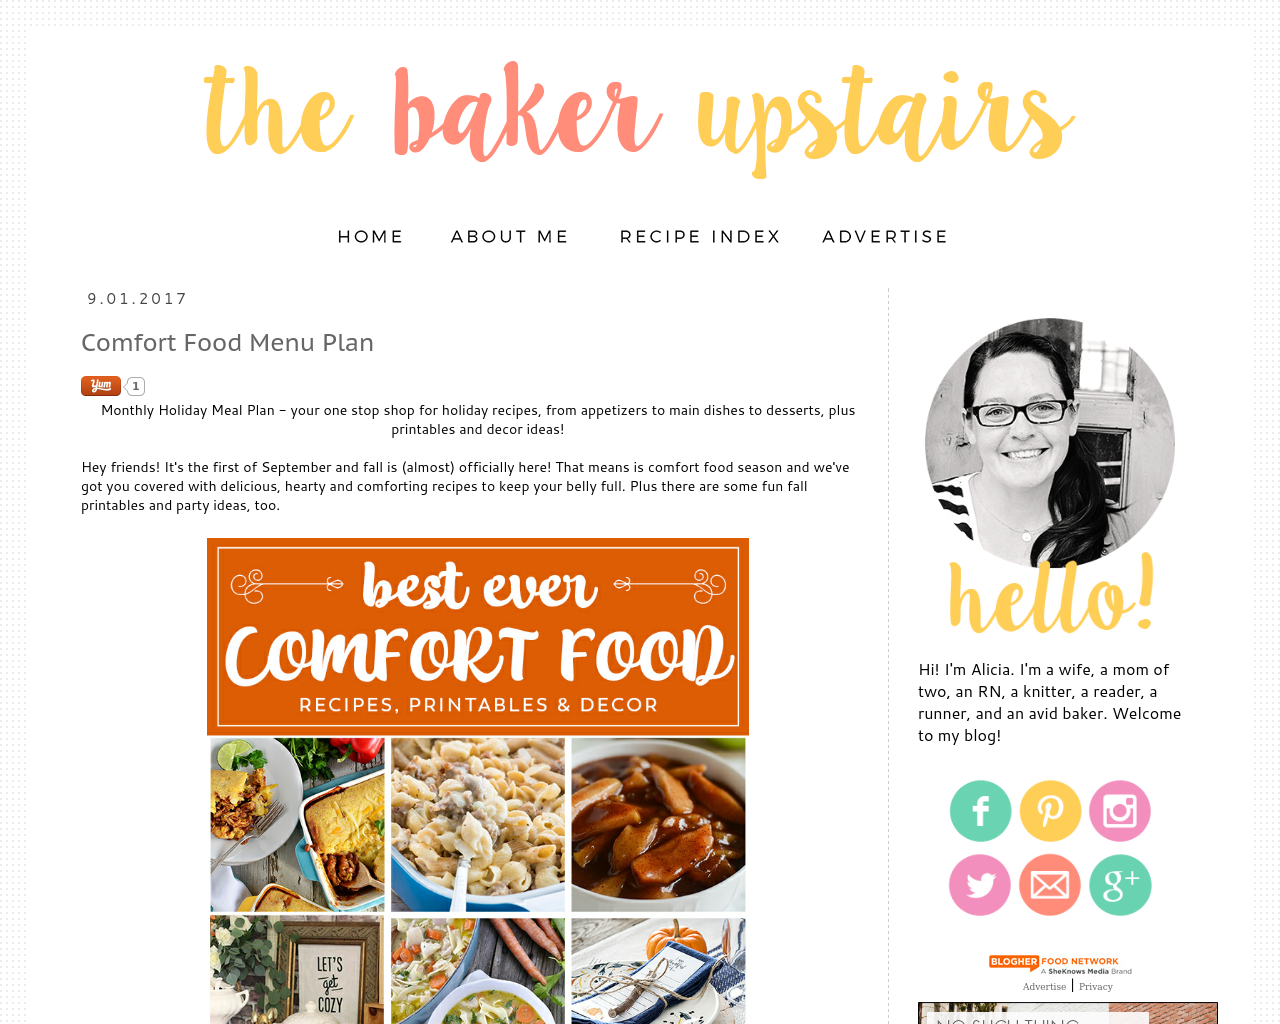 The-Baker-Upstairs-Advertising-Reviews-Pricing